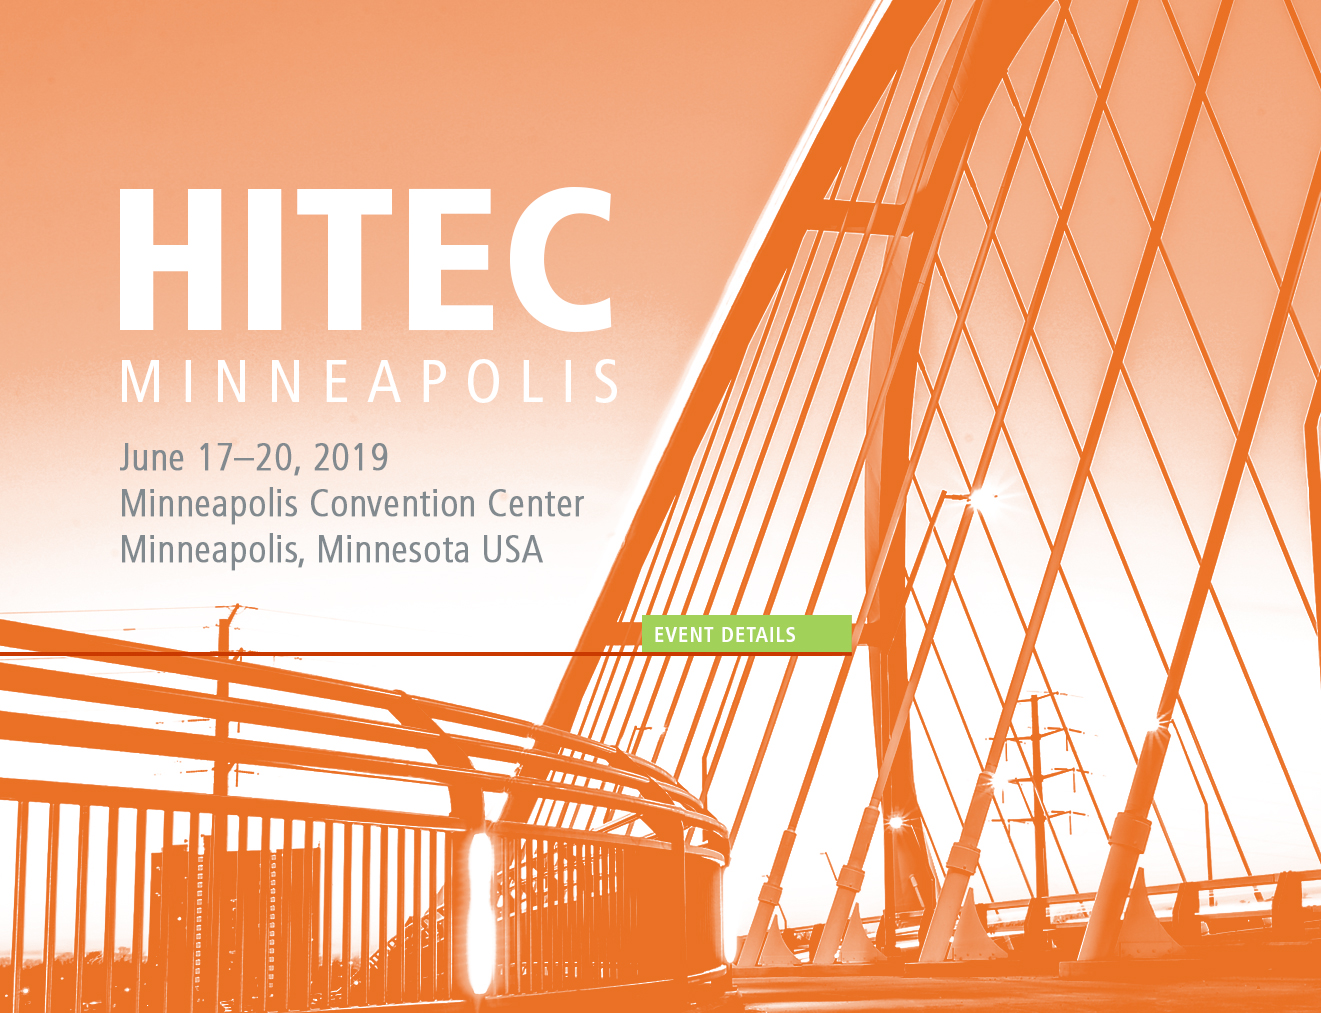 HITEC 2019 Minneapolis